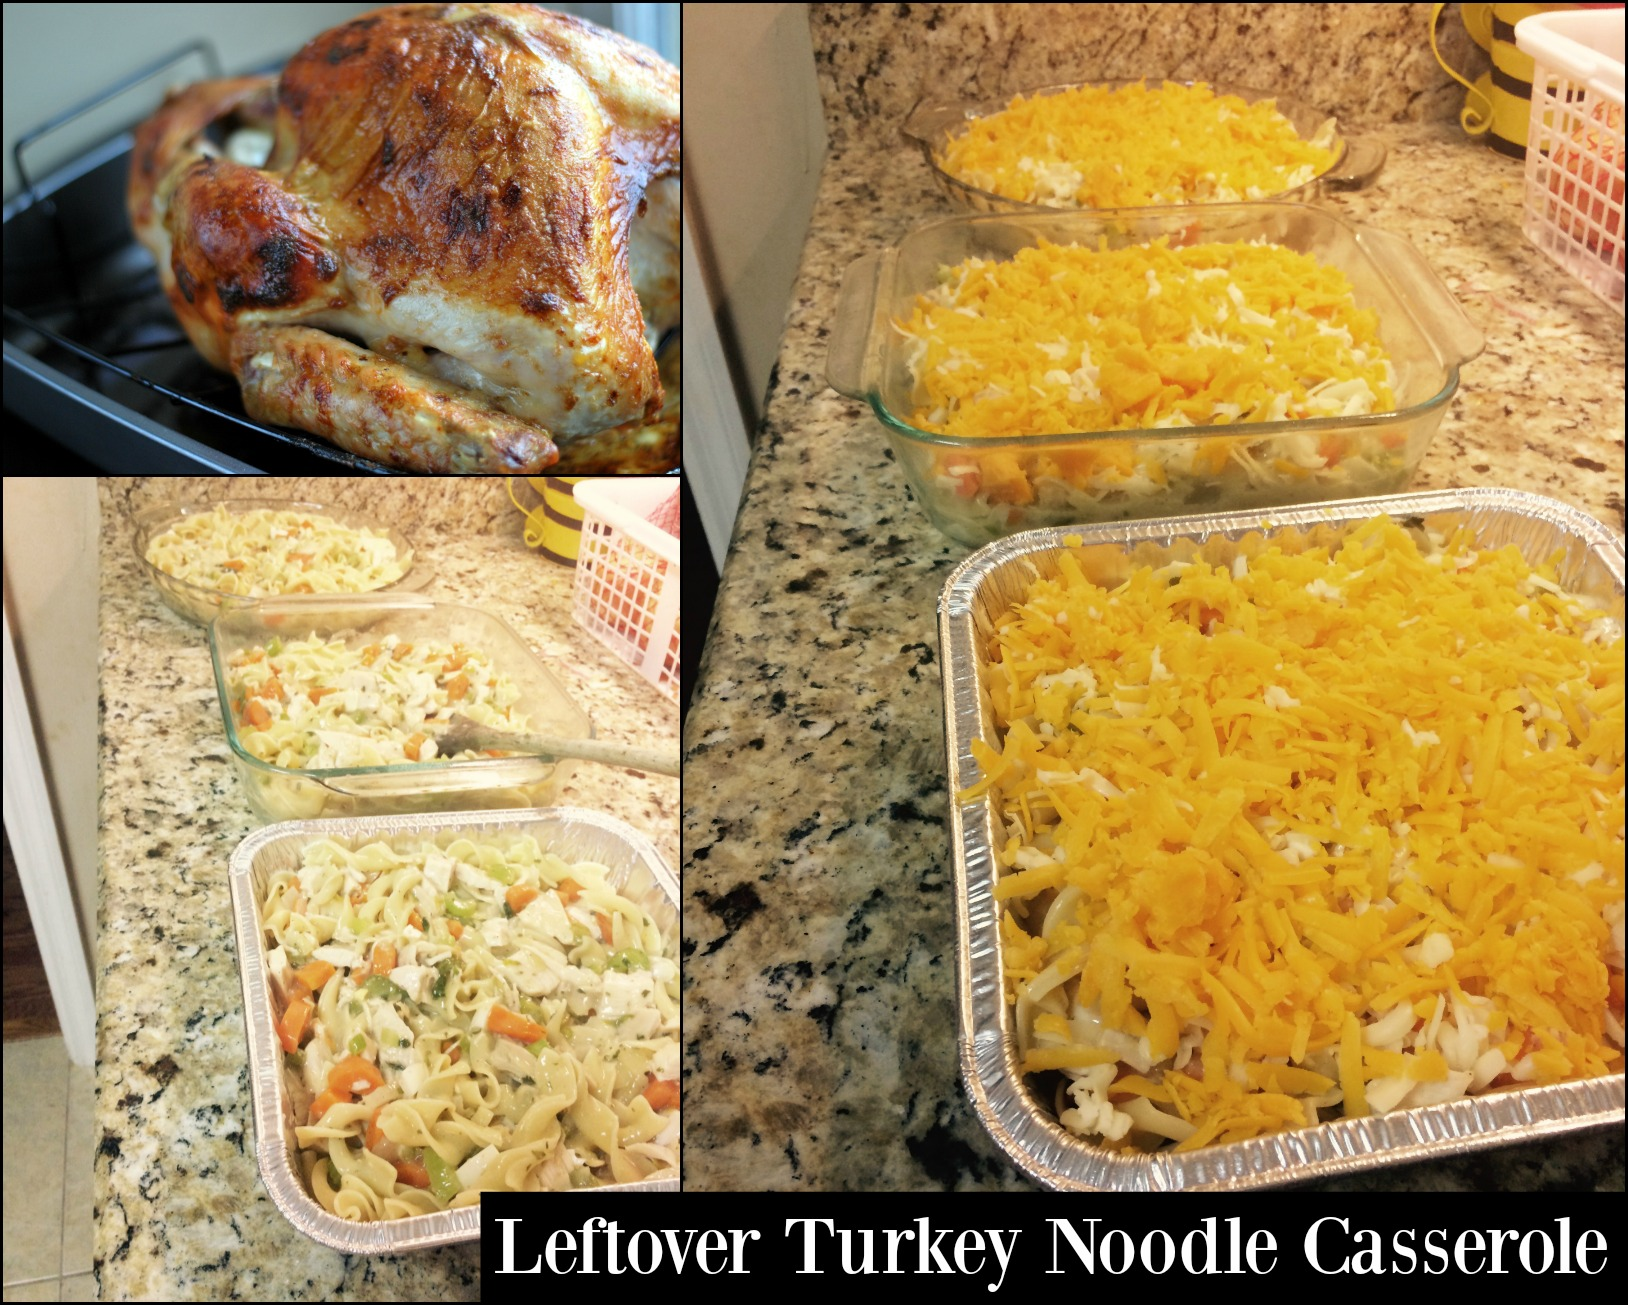 Leftover Turkey Noodle Casserole - Aunt Bee's Recipes